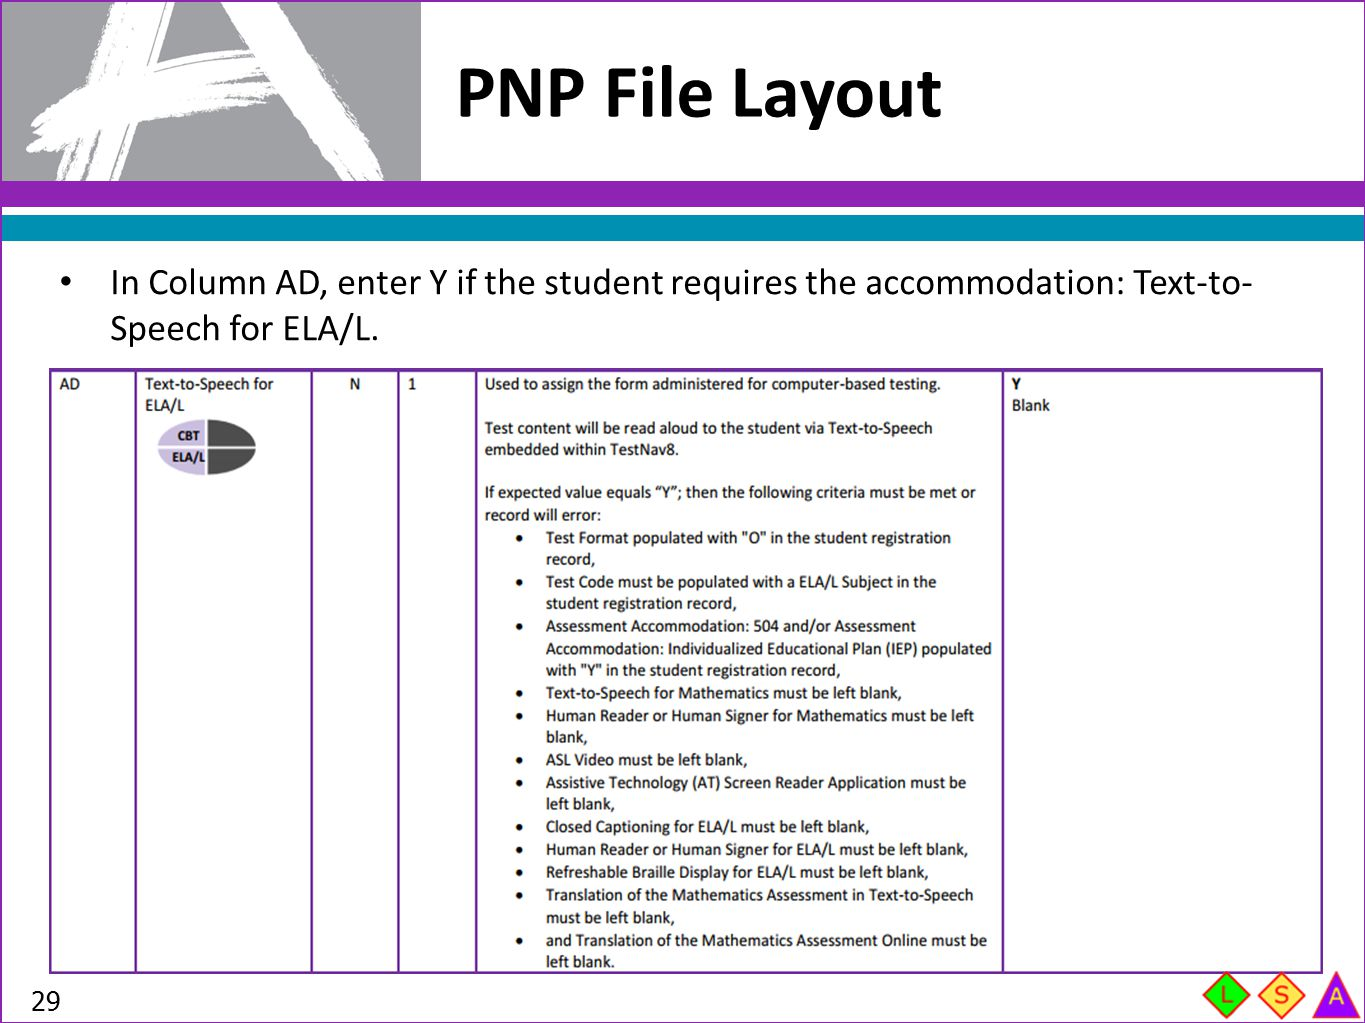 PNP File Layout In Column AD, enter Y if the student requires the accommodation: Text-to-Speech for ELA/L.